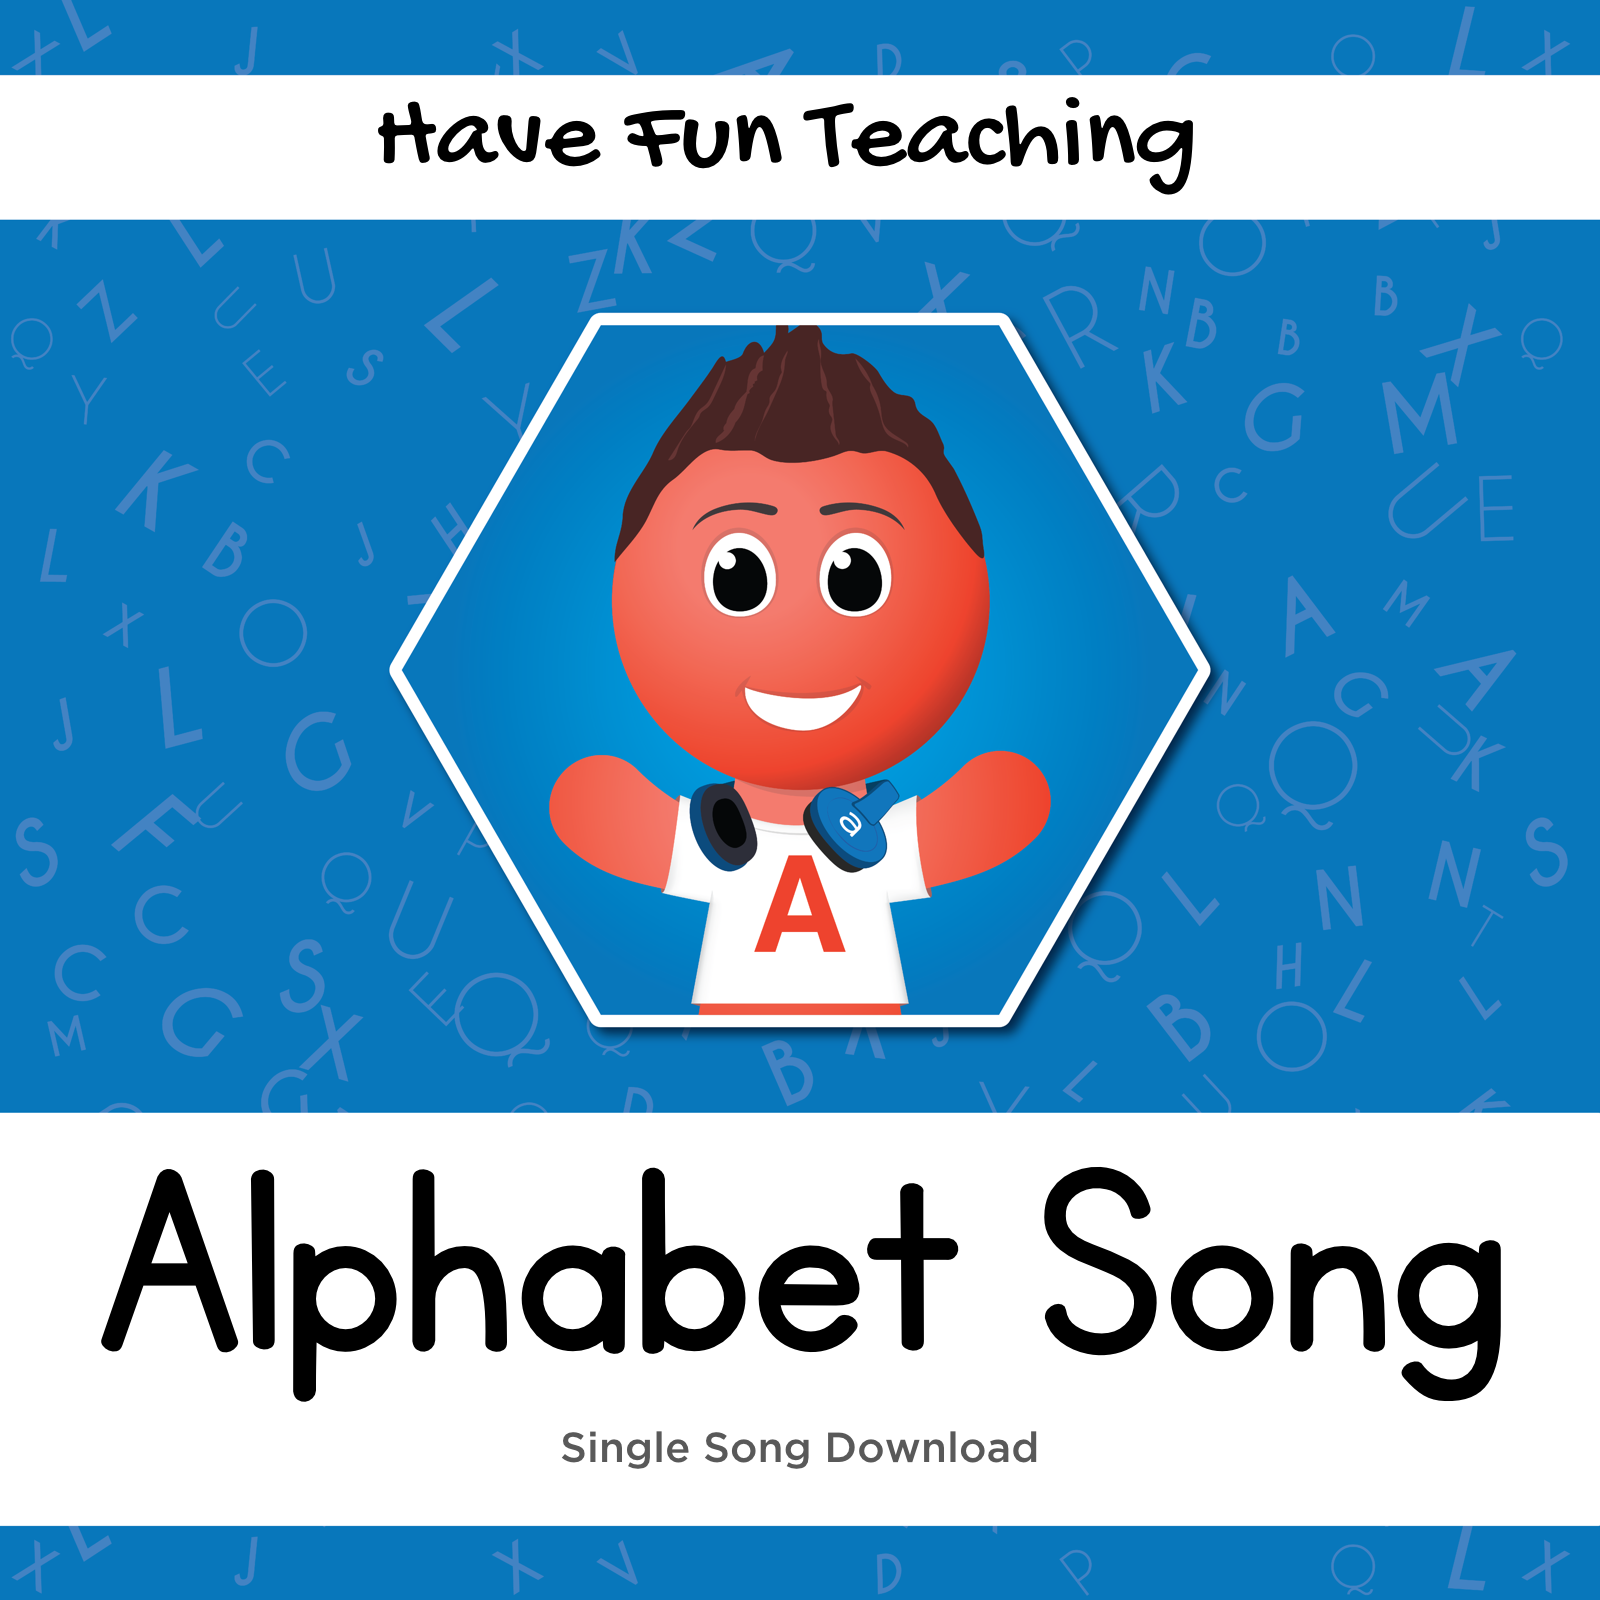 Alphabet Song Official Alphabet Music Video By Have Fun